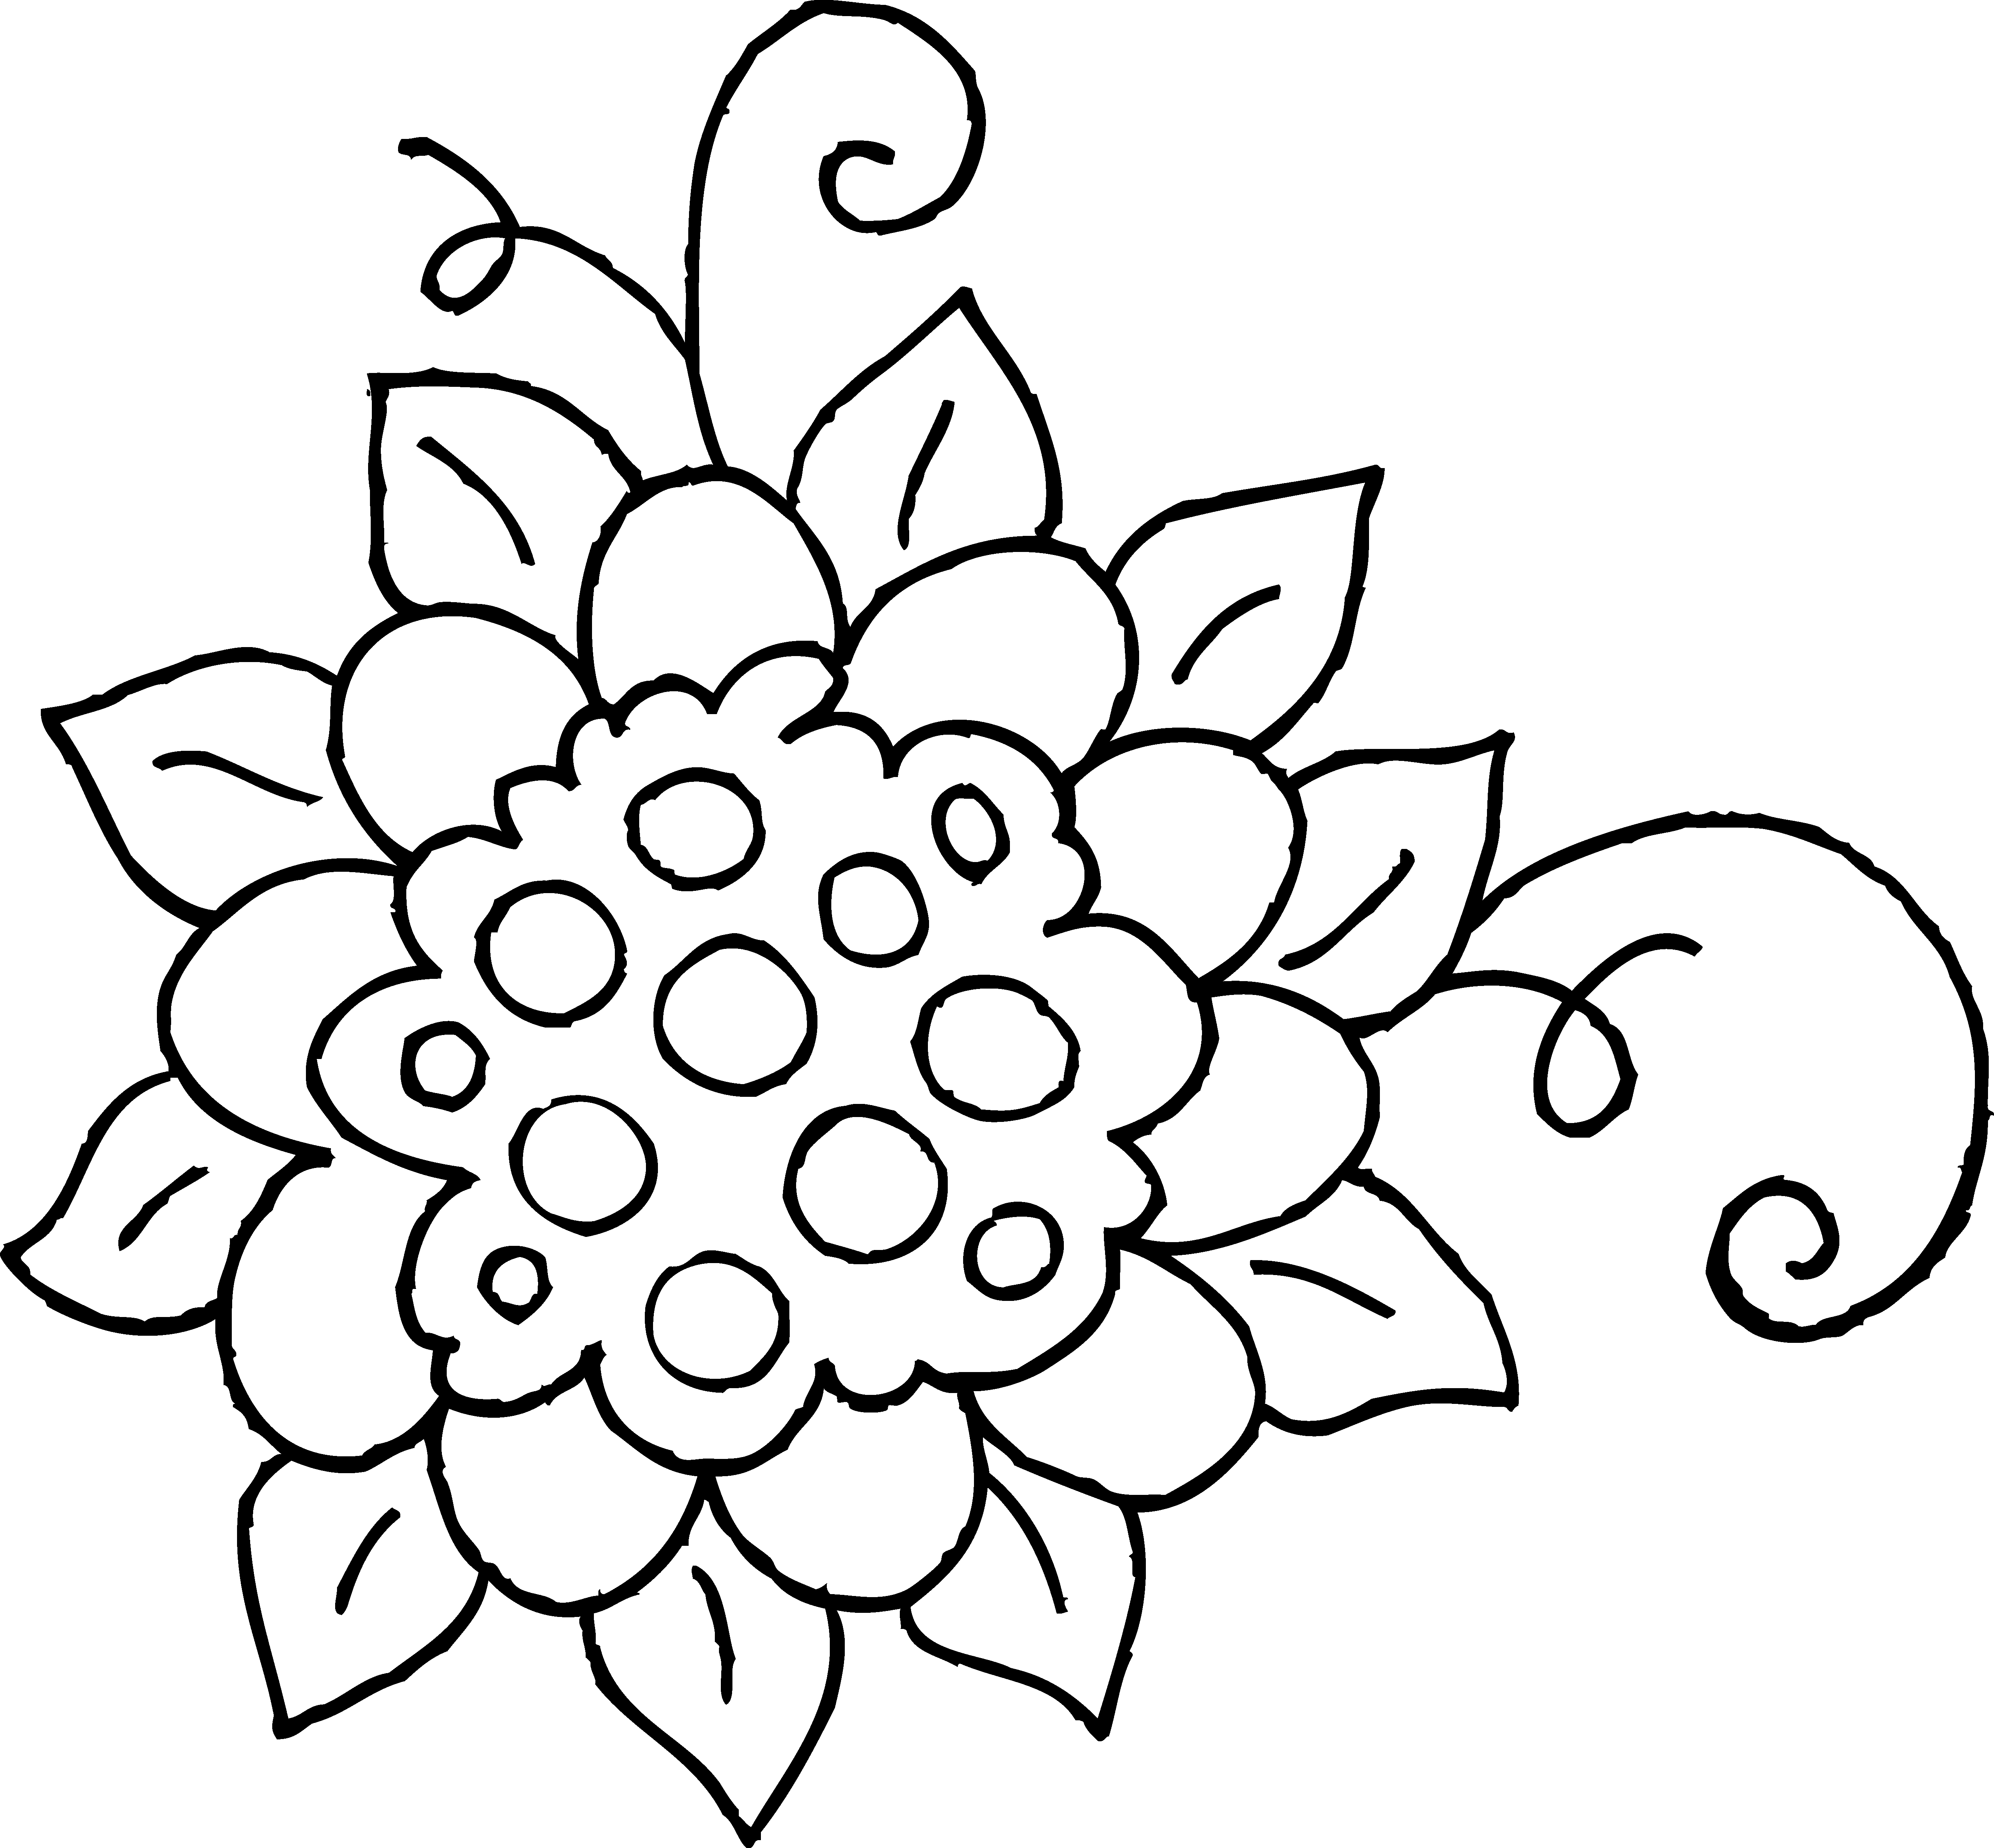 Spring flowers black and white clipart transparent clipart royalty free library Black and white Flower Drawing Clip art - Drawings Of Spring ... clipart royalty free library